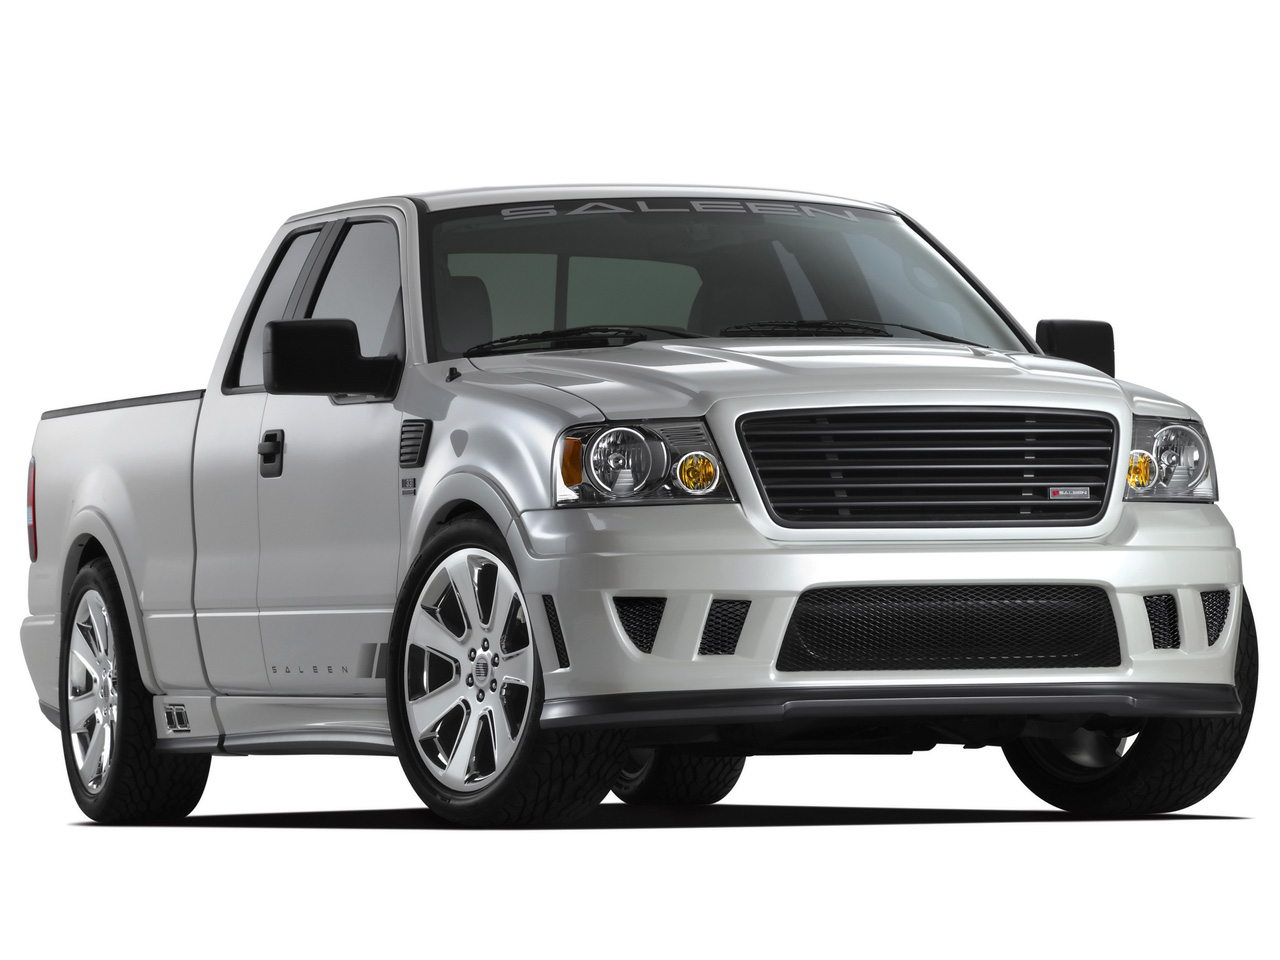 Saleen Sport Truck S331 photos - PhotoGallery with 7 pics| CarsBase.com